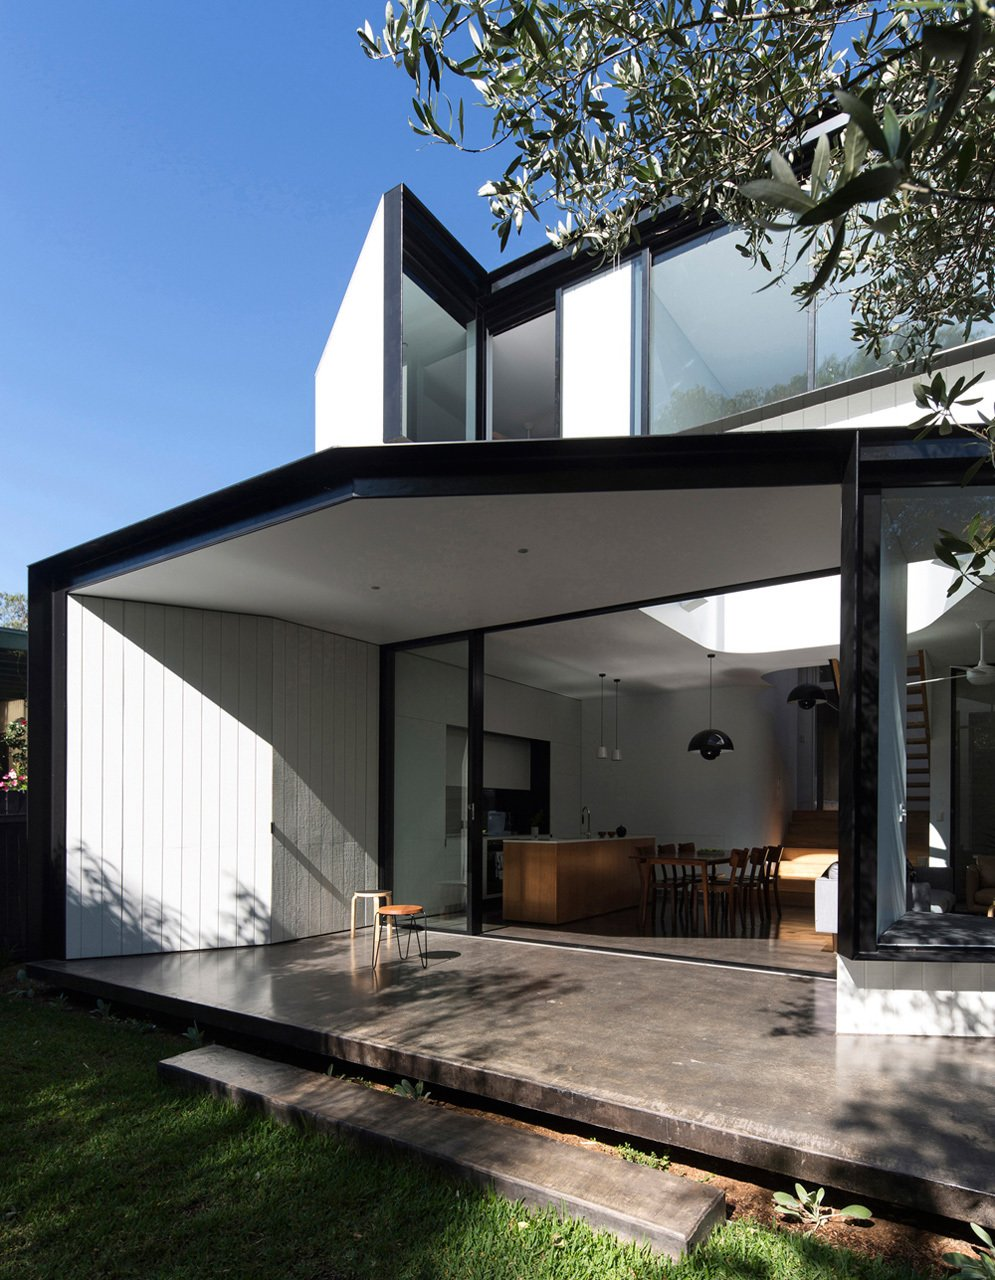 Photo 5 of 22 in Unfurled House By Christopher Polly Architect